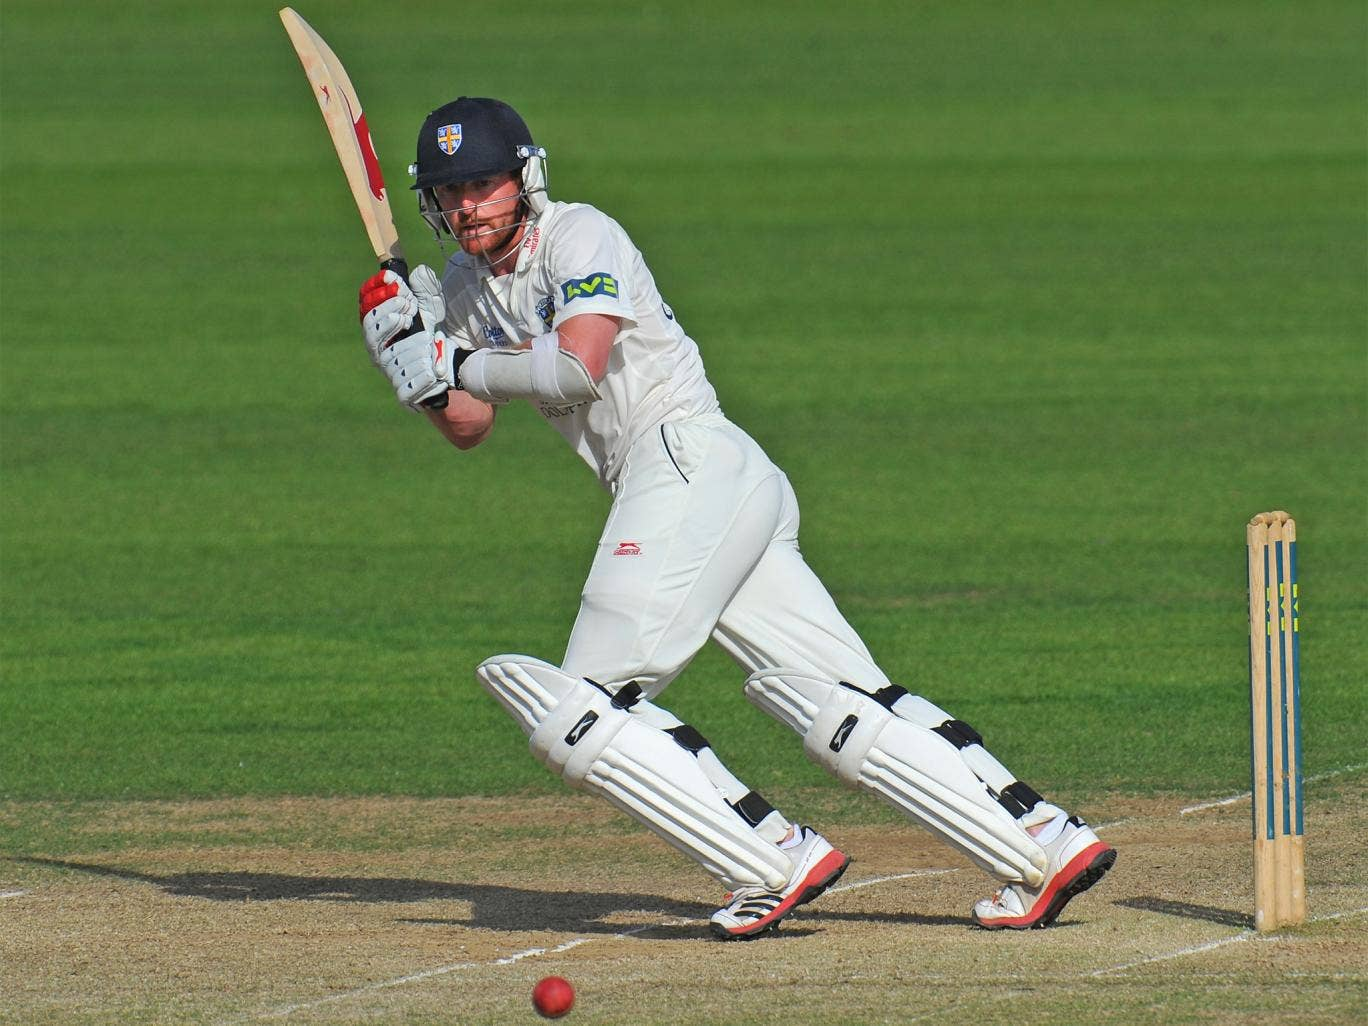 Paul Collingwood made a vital 45 to steady Durham